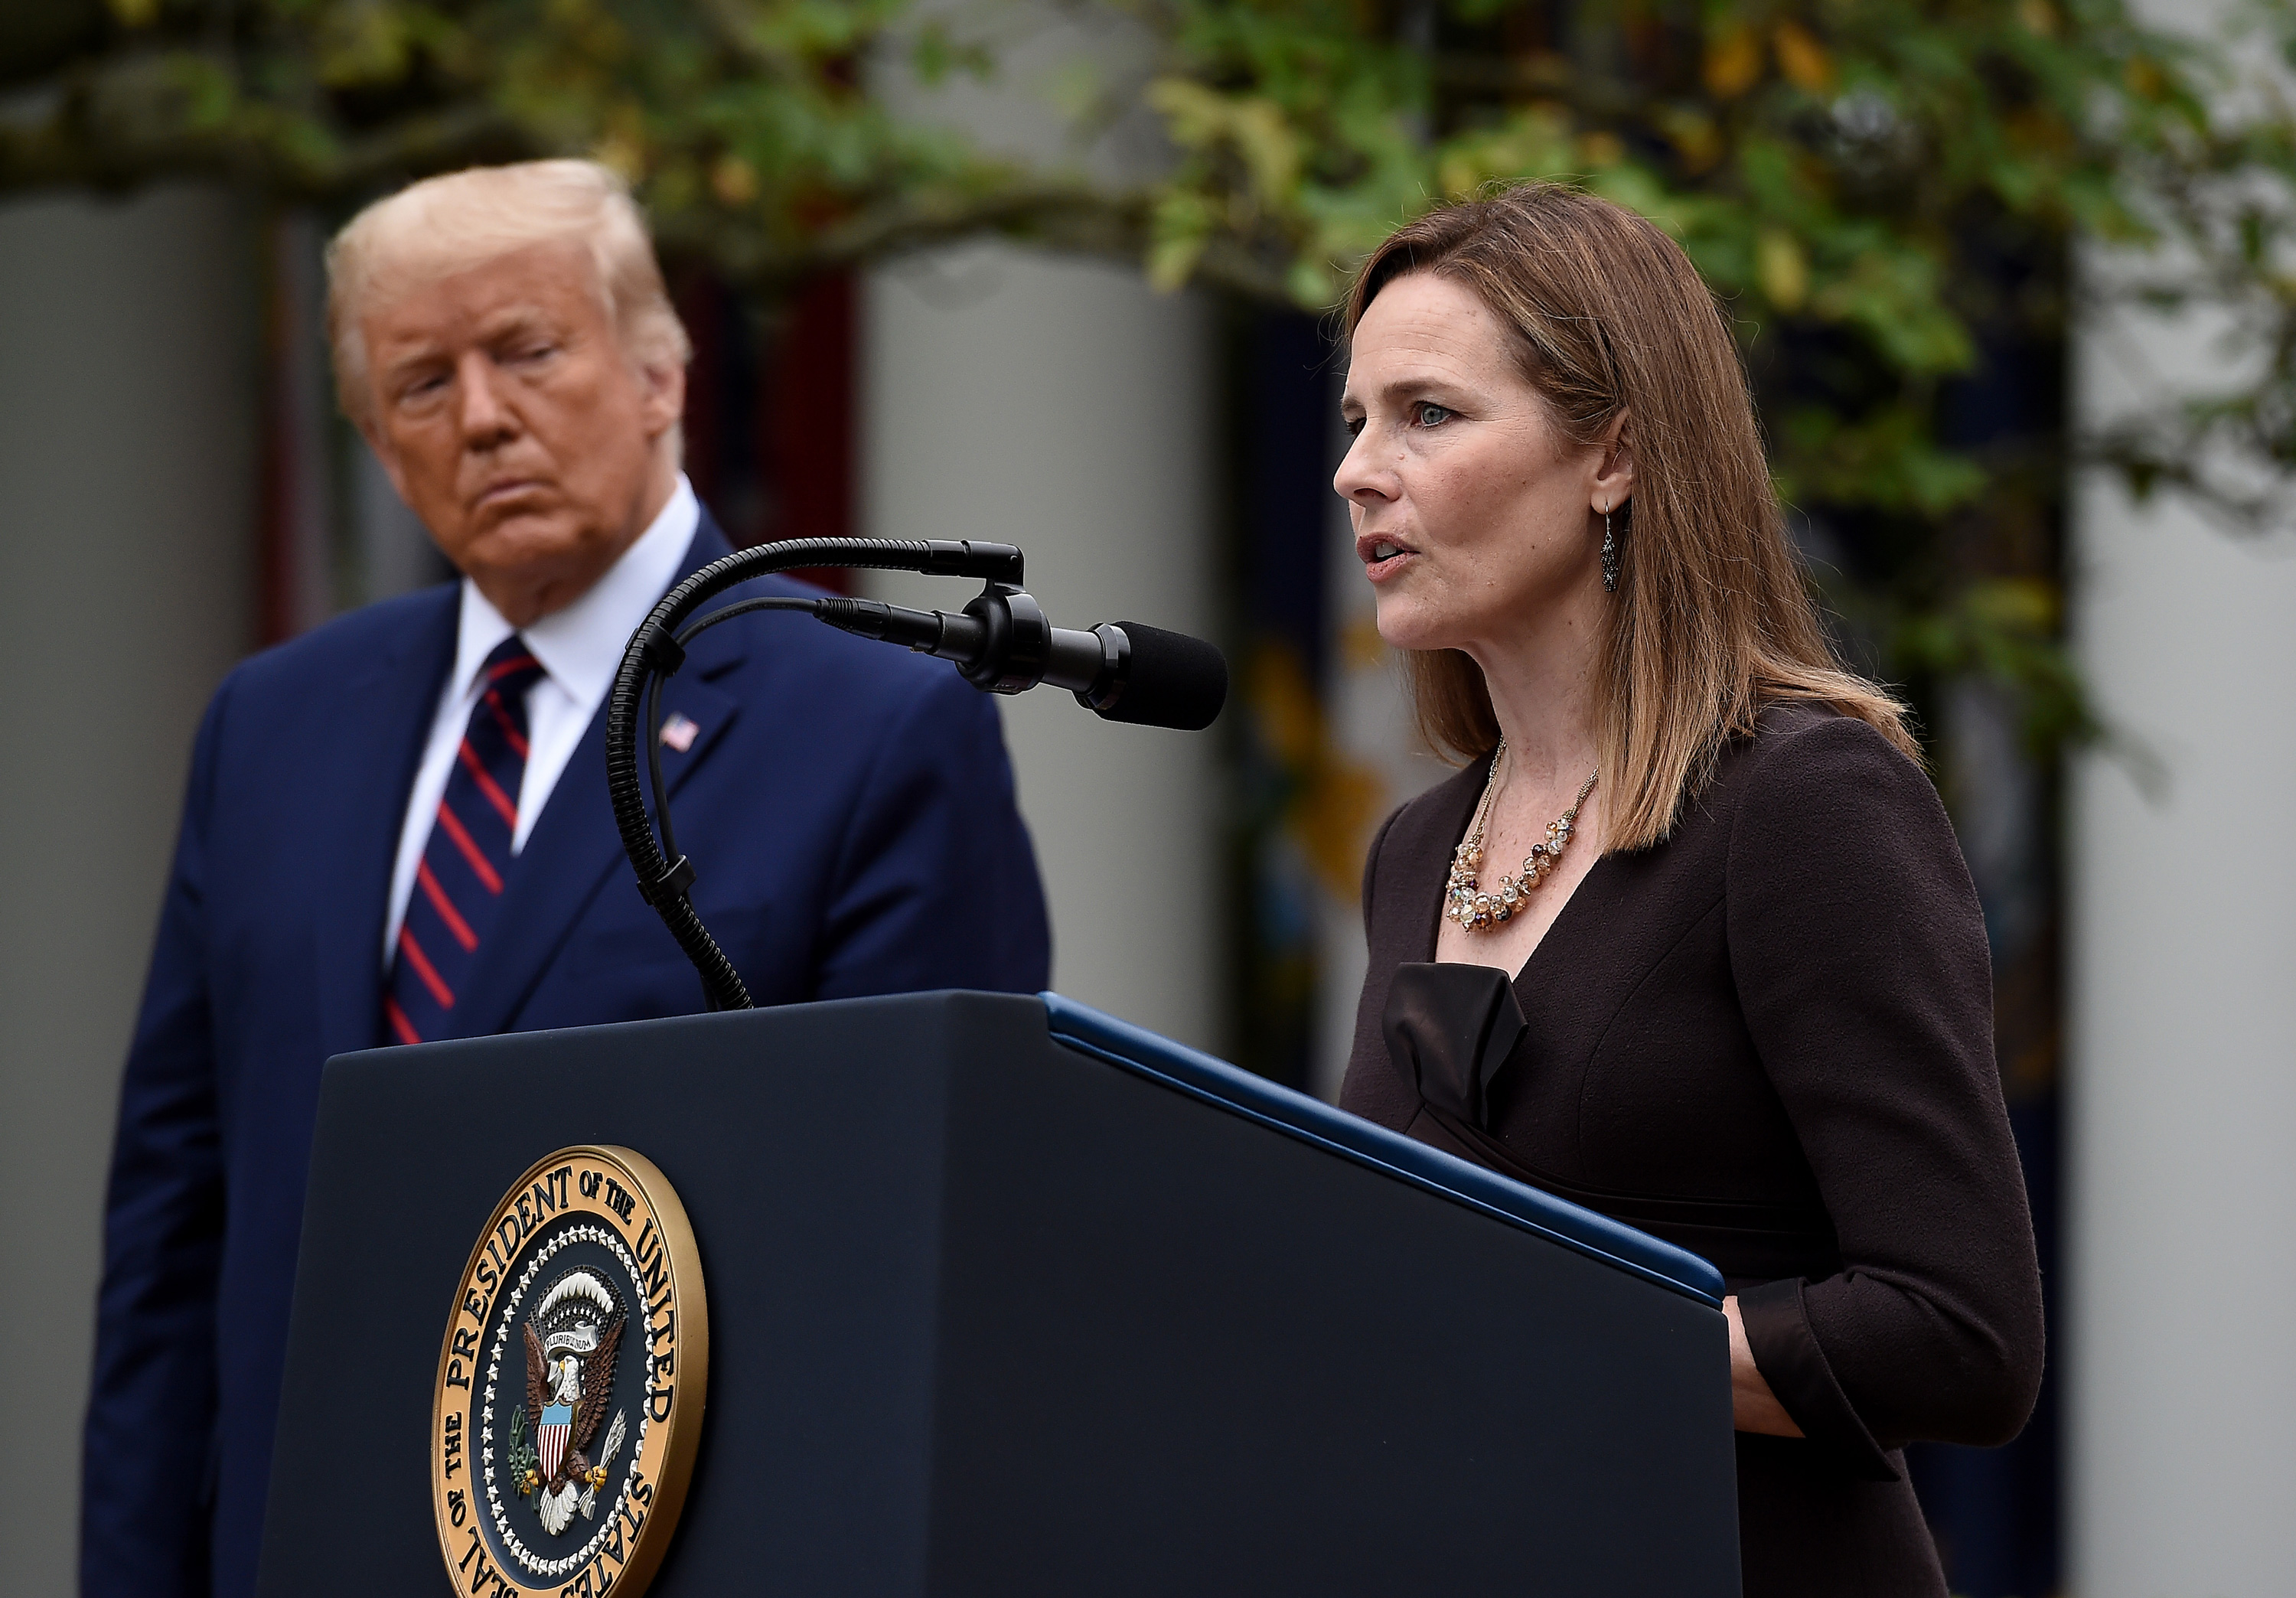 Trump says he did not discuss Roe v. Wade with Amy Coney Barrett